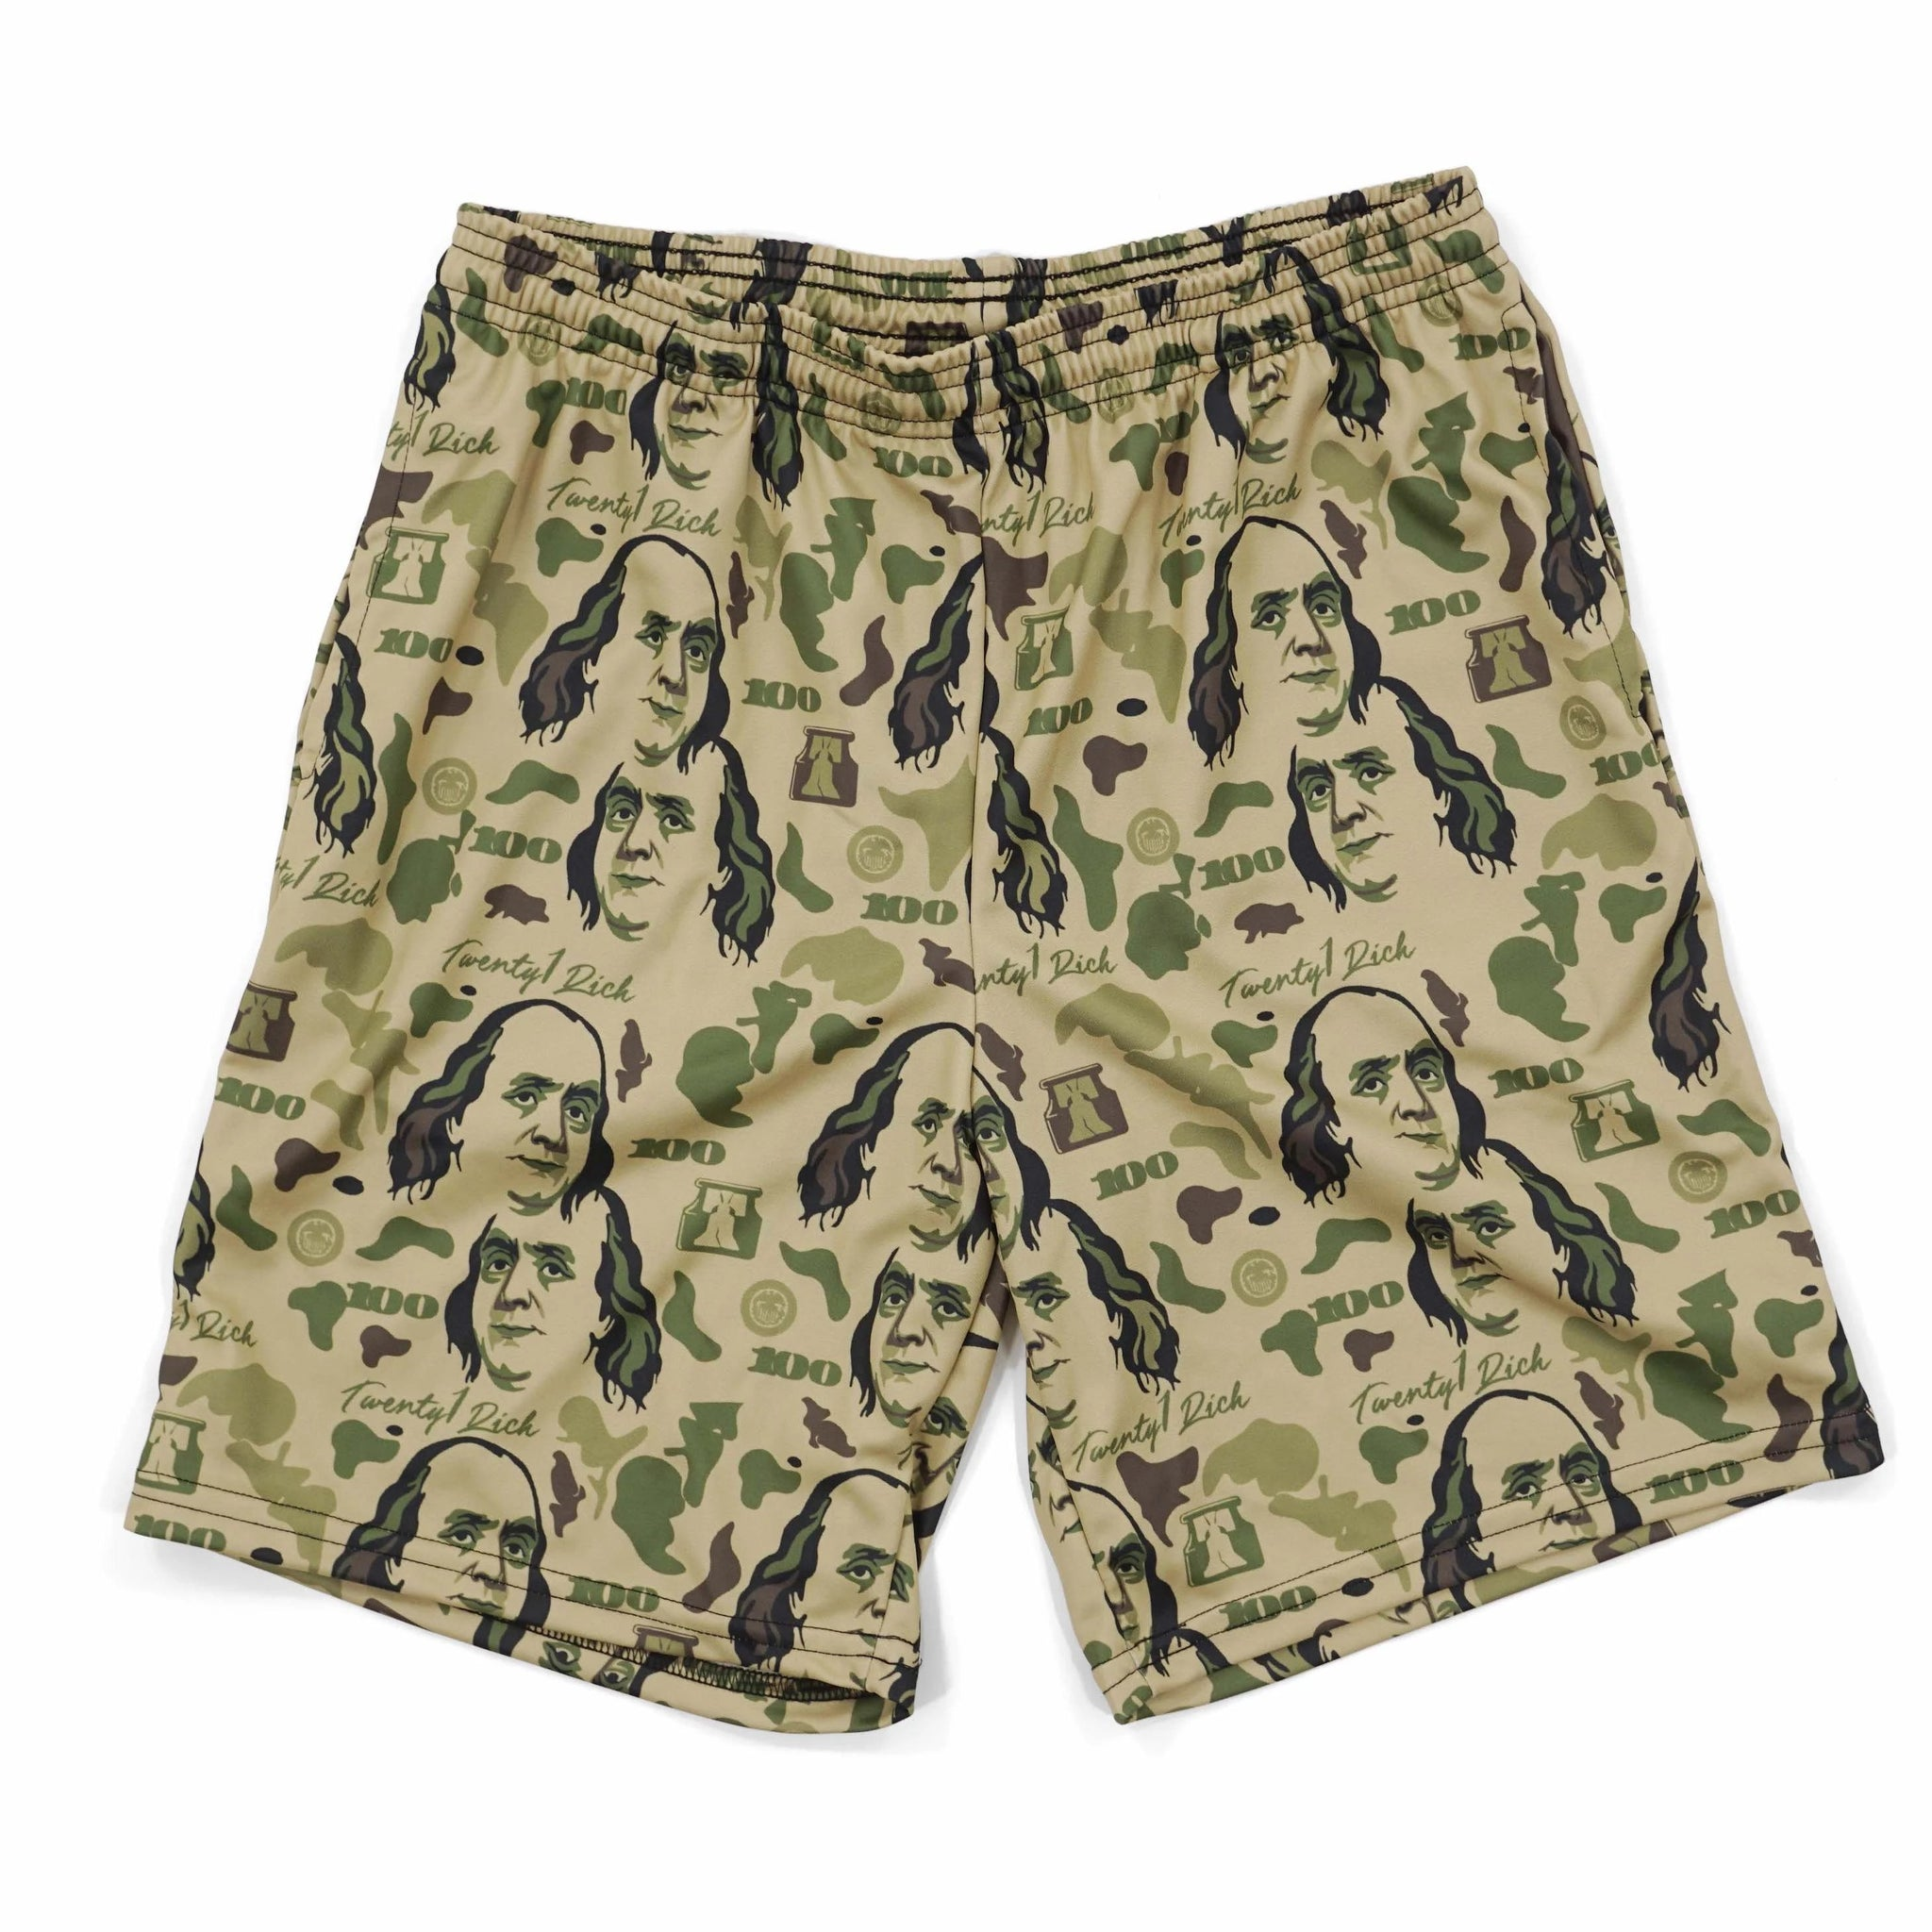 Desert Camo Men's Shorts